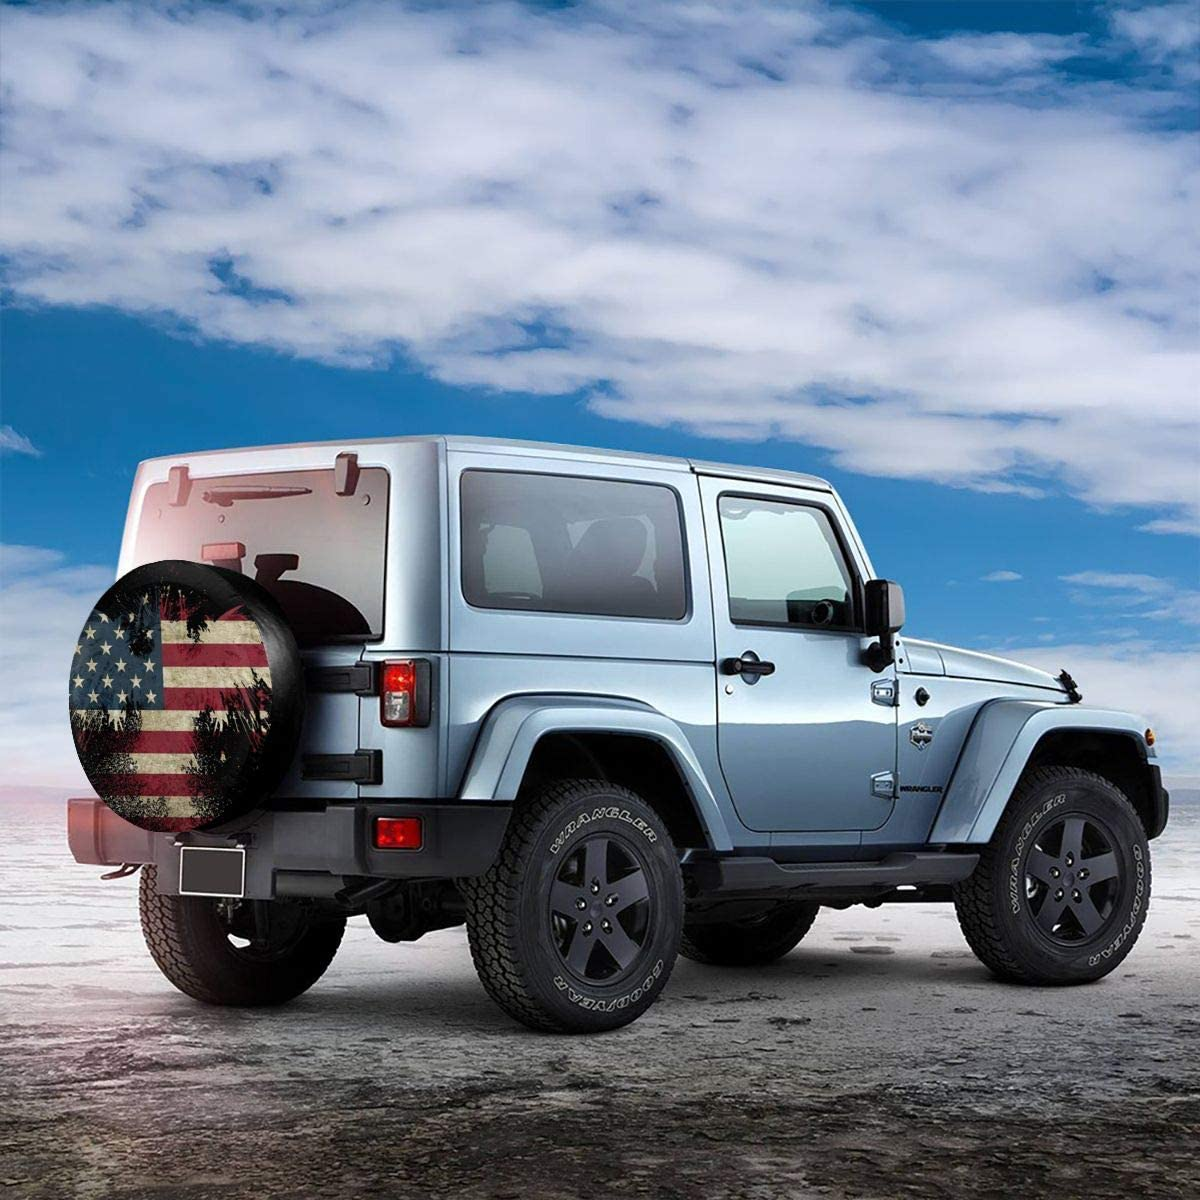 RV SUV and Various Vehicles 14 15 16 17 Inch /… Car Tire Cover Sunscreen Protective Cover Bald Eagle American Flag Water Proof Universal Spare Wheel Tire Cover Fit for Trailer